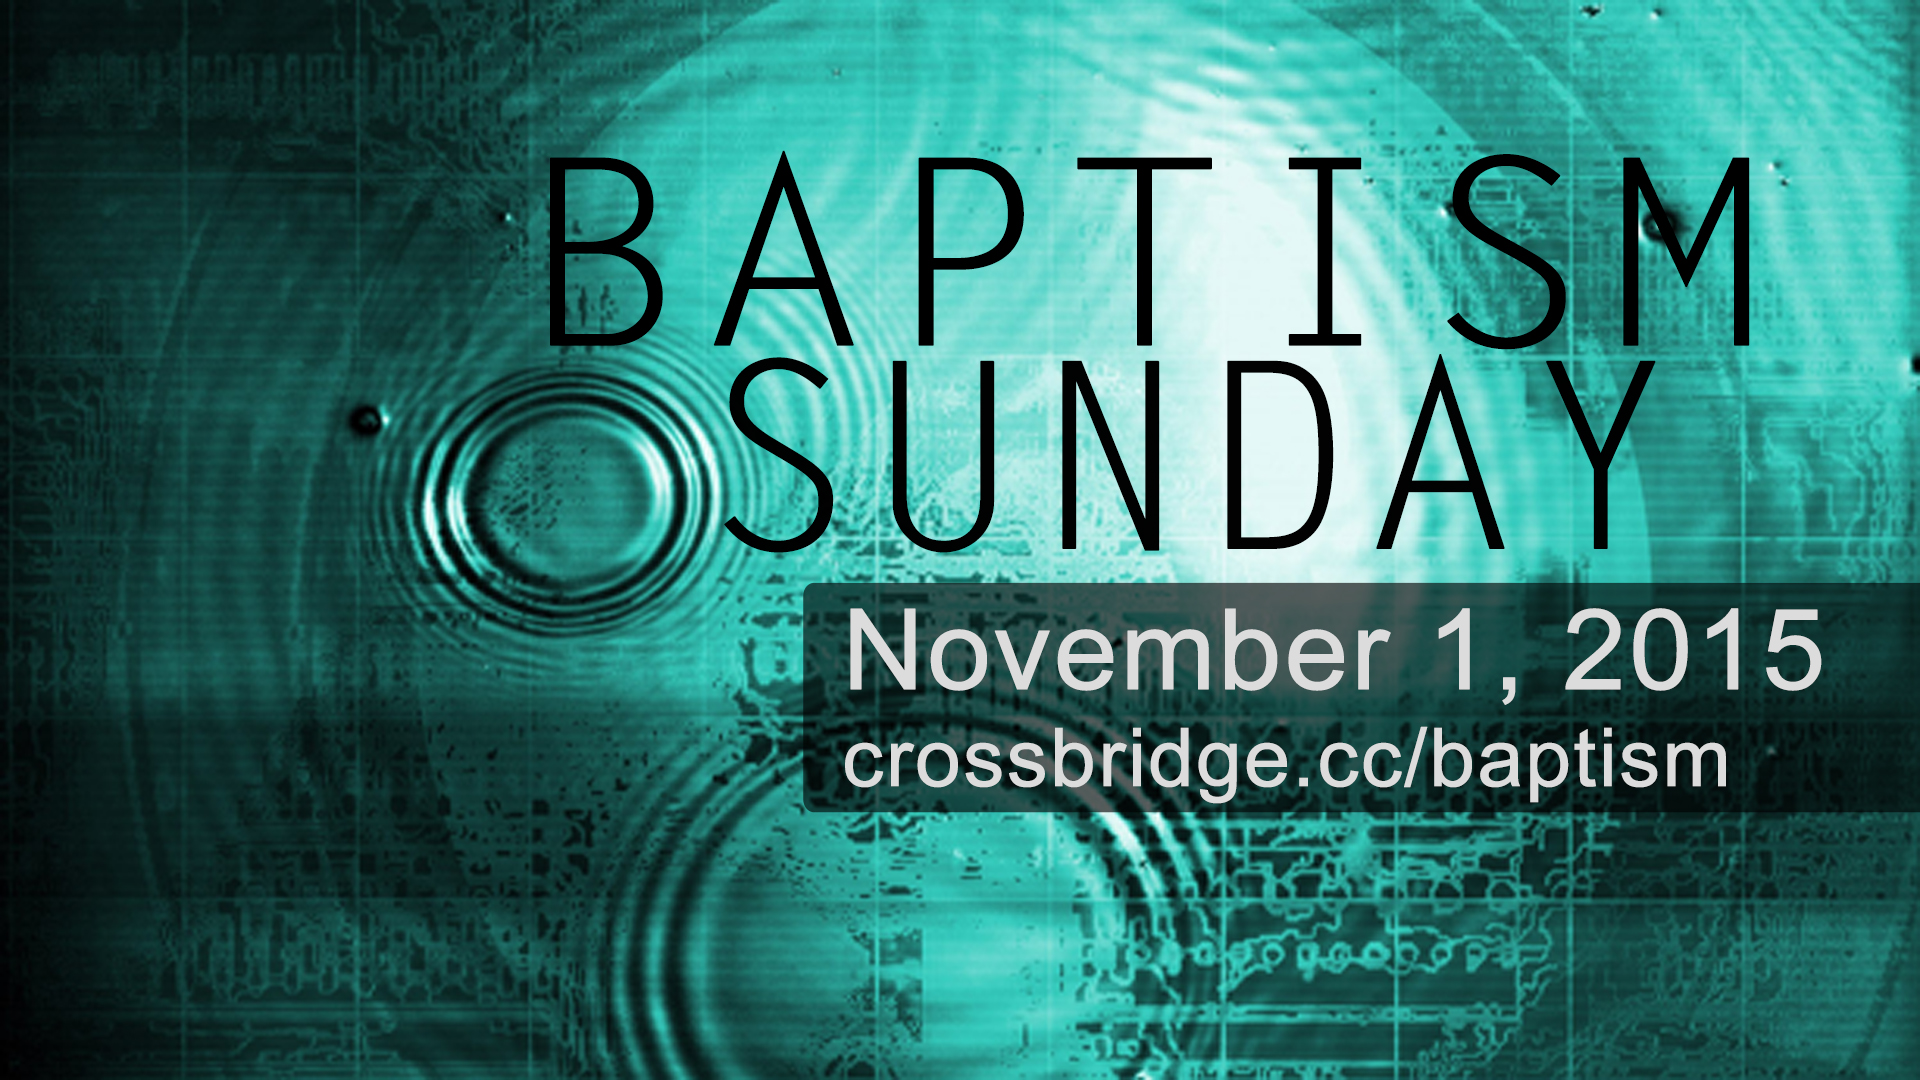 BAPTISM SUNDAY - November 1 Take your next step in following Jesus by going public with your faith through Baptism! Email  HERE  to receive a baptism packet with more information about this important step.